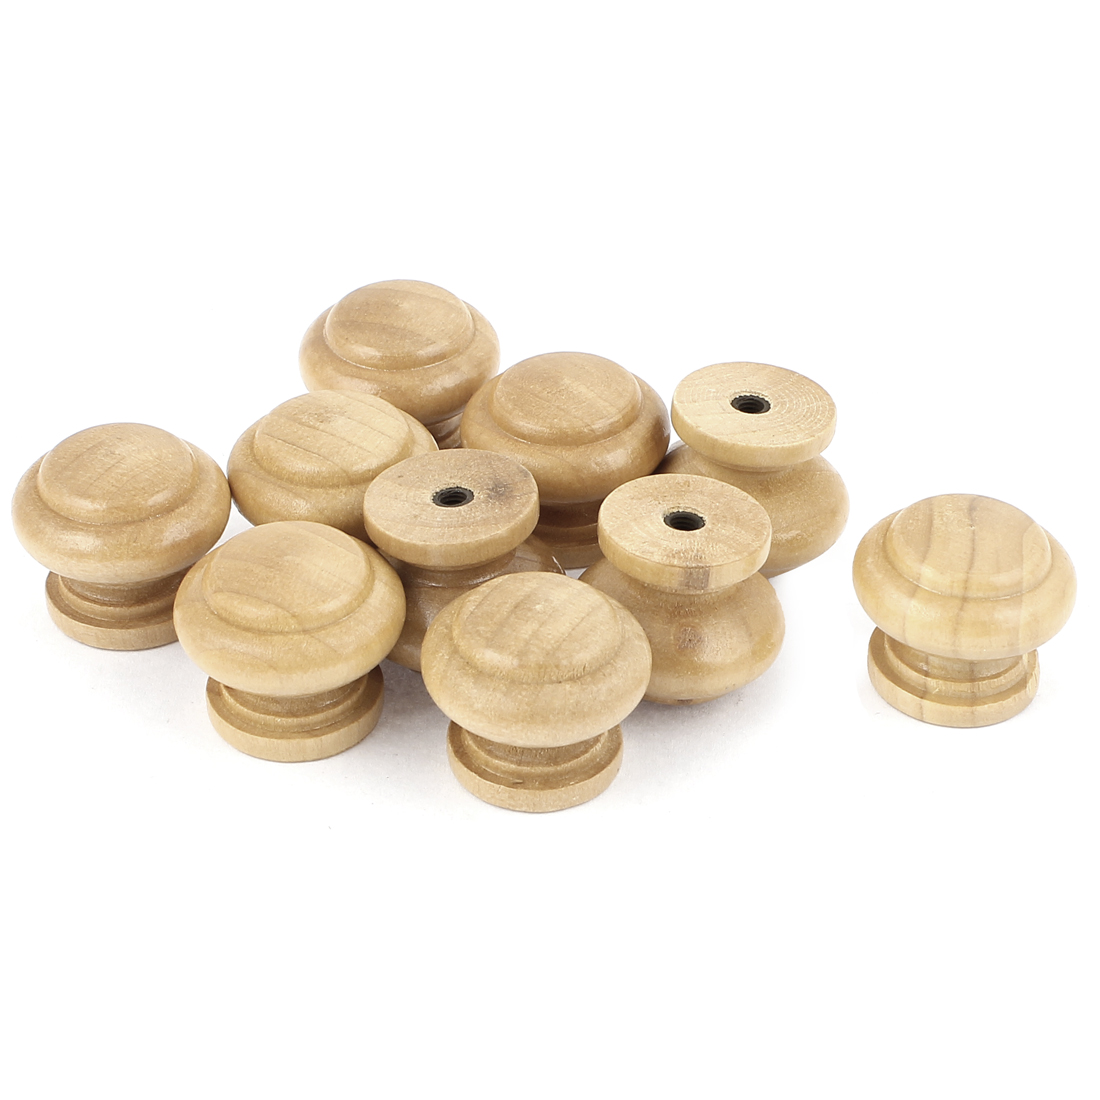 Cabinet Drawer Cupboard Door Wooden Round Shaped Pull Knob Handle 10 Pcs